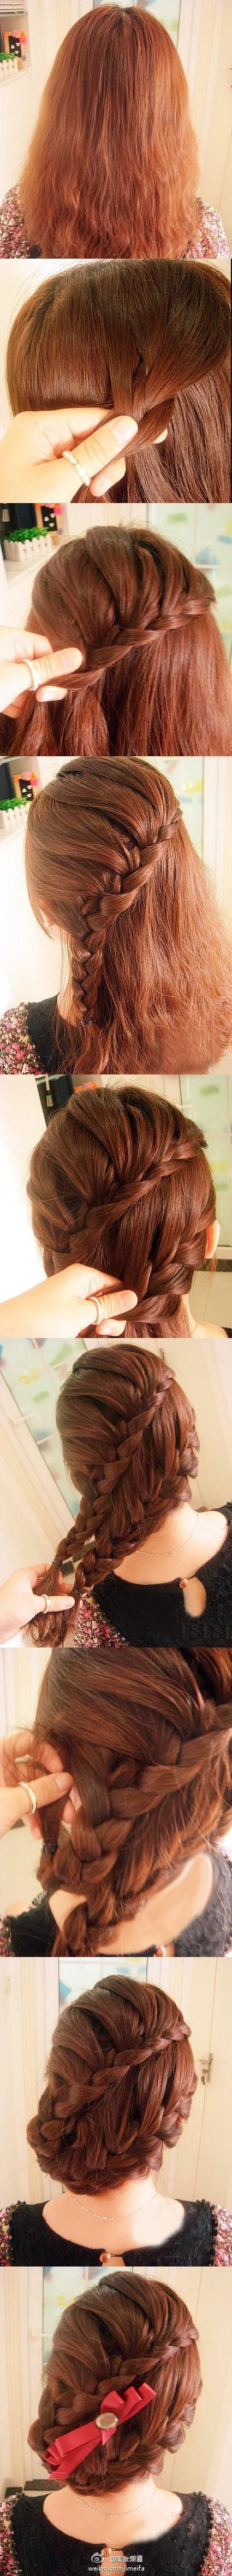 We dig this take on a braided updo.